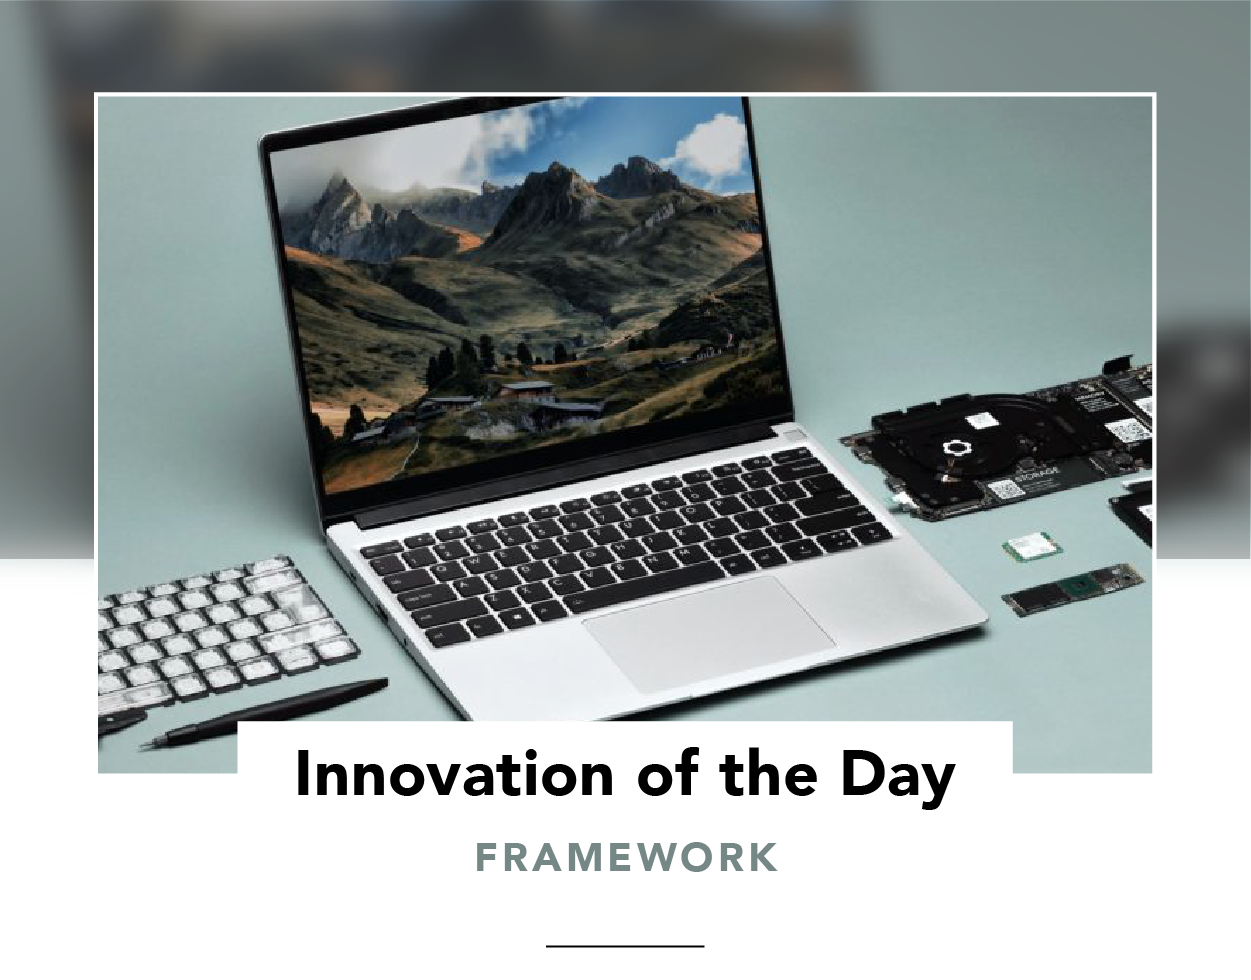 Framework laptop surrounded by a screwdriver and replaceable parts